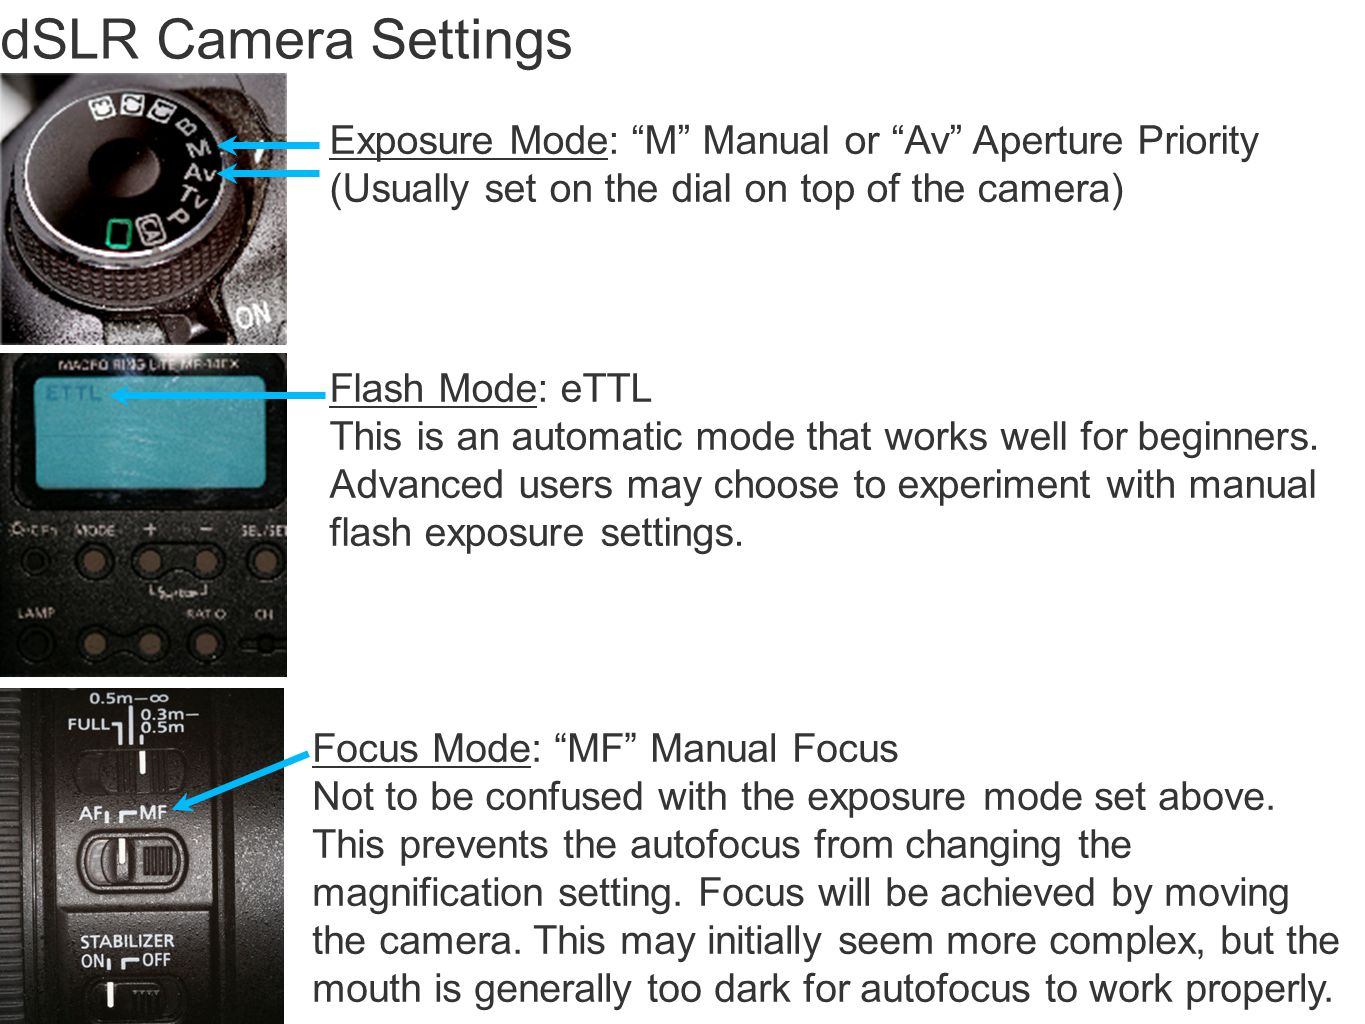 dSLR Camera Settings Exposure Mode: M Manual or Av Aperture Priority (Usually set on the dial on top of the camera) Flash Mode: eTTL This is an automatic mode that works well for beginners.